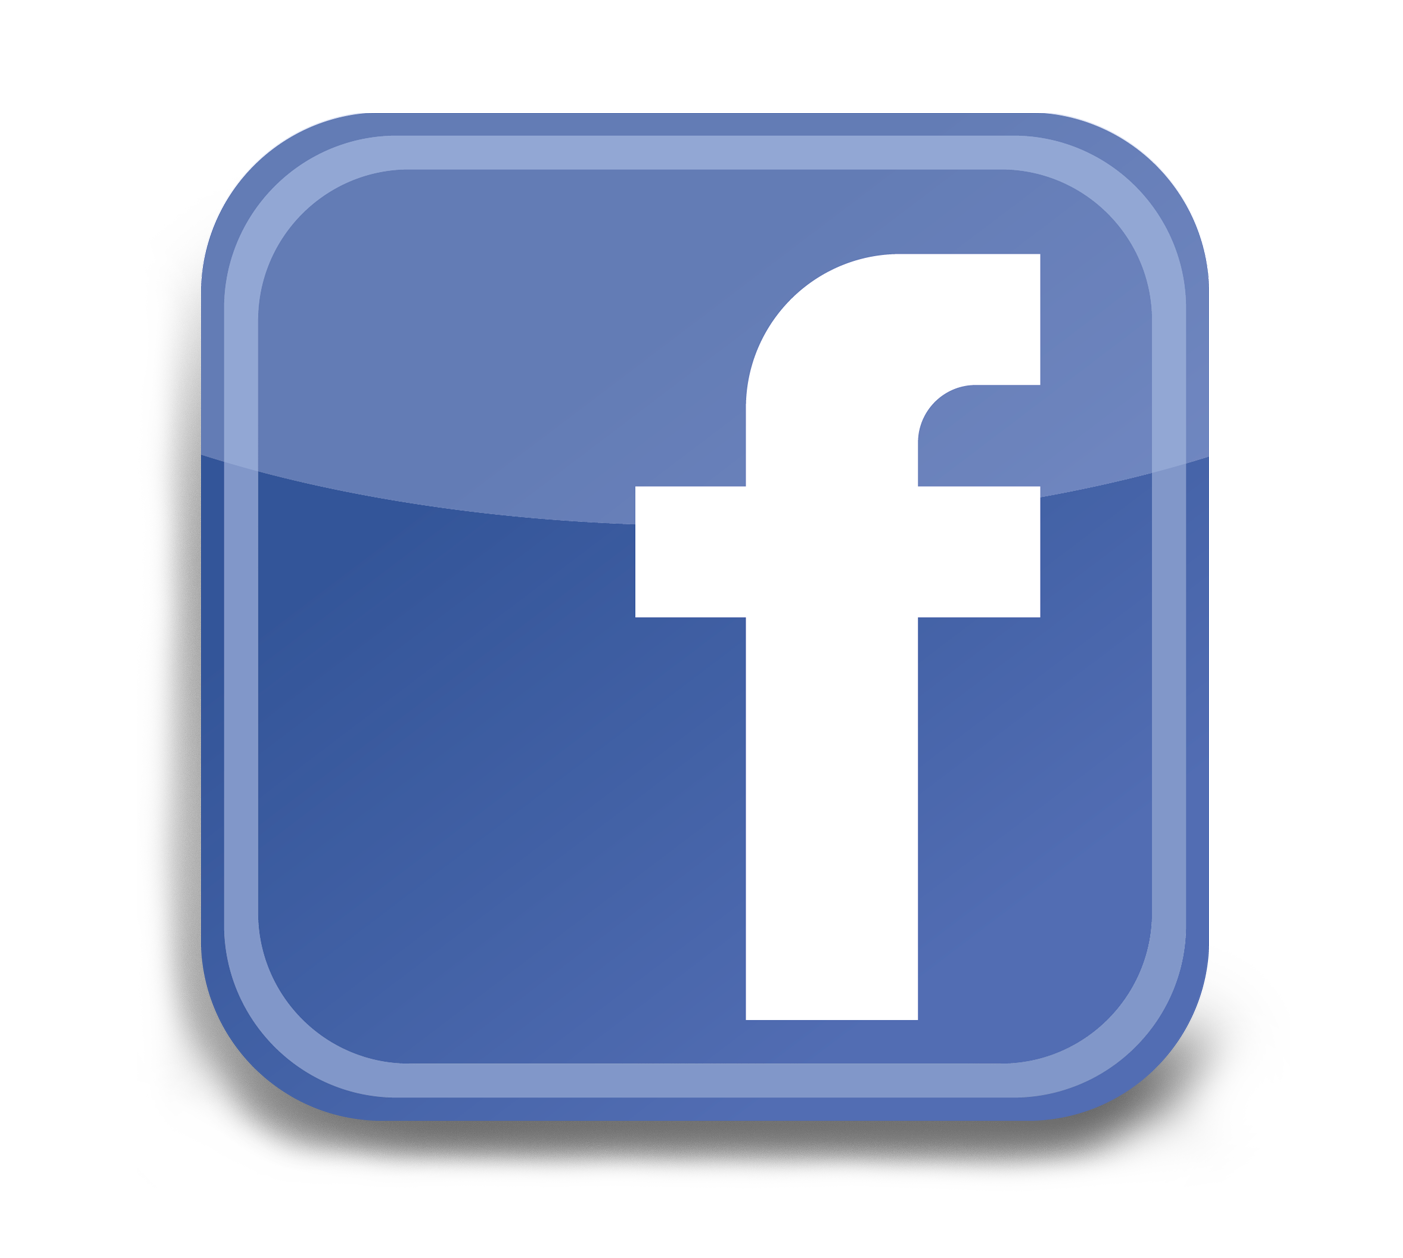 Clipart Png Collection Facebook Logo #2335.